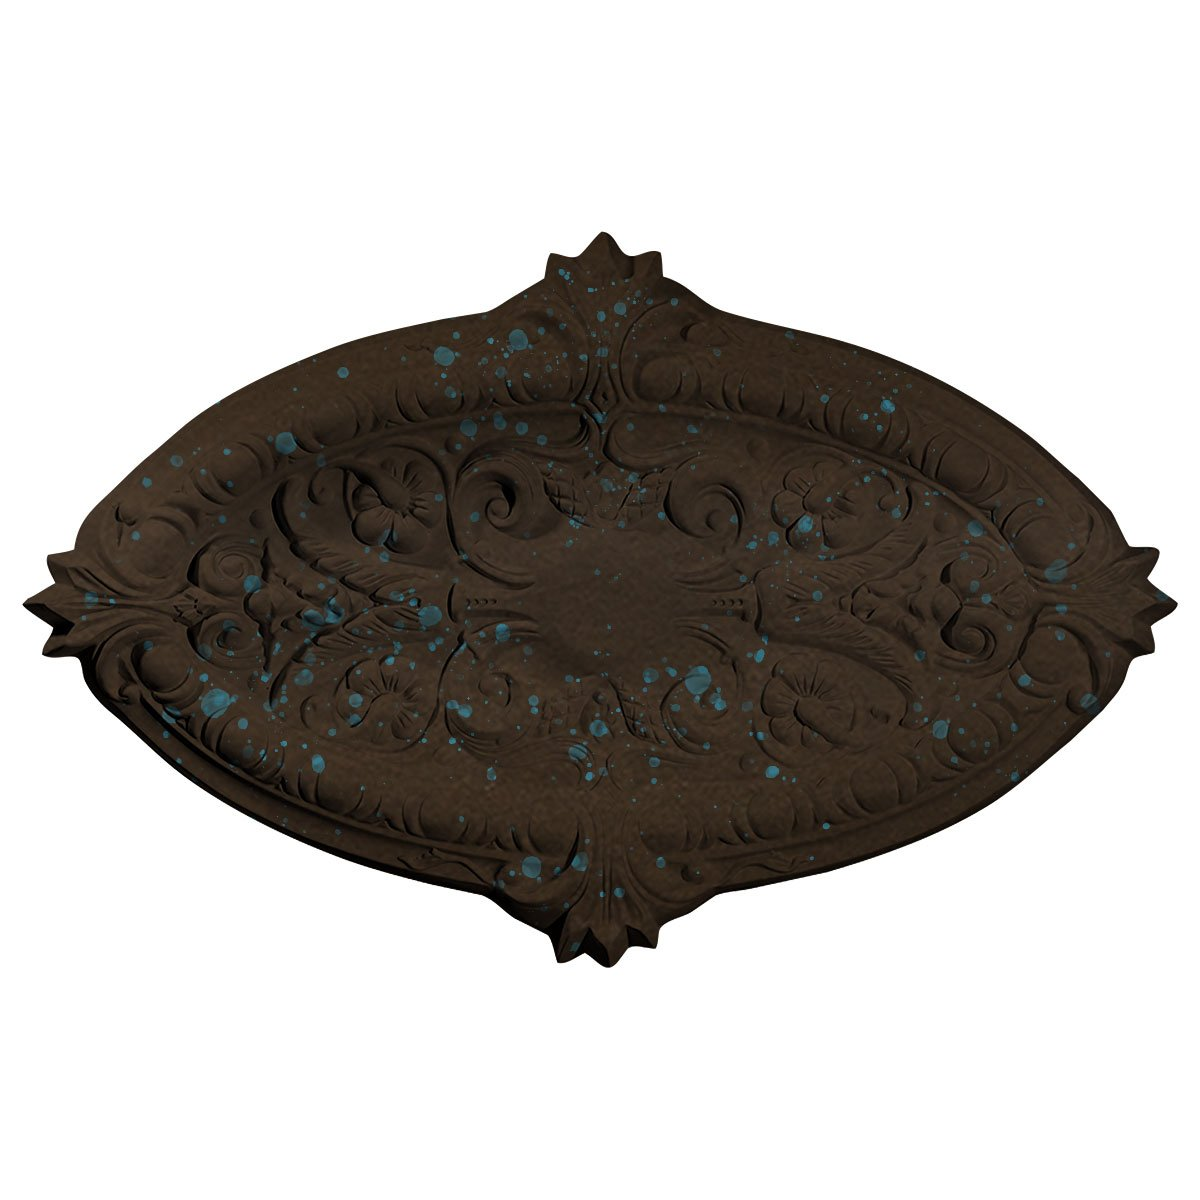 Ekena Millwork CM26MRBBS 26 3/8'' W x 17 1/4'' H x 1 3/4'' P Marcella Ceiling Medallion (fits Canopies up to 3''), Bronze Blue Patina